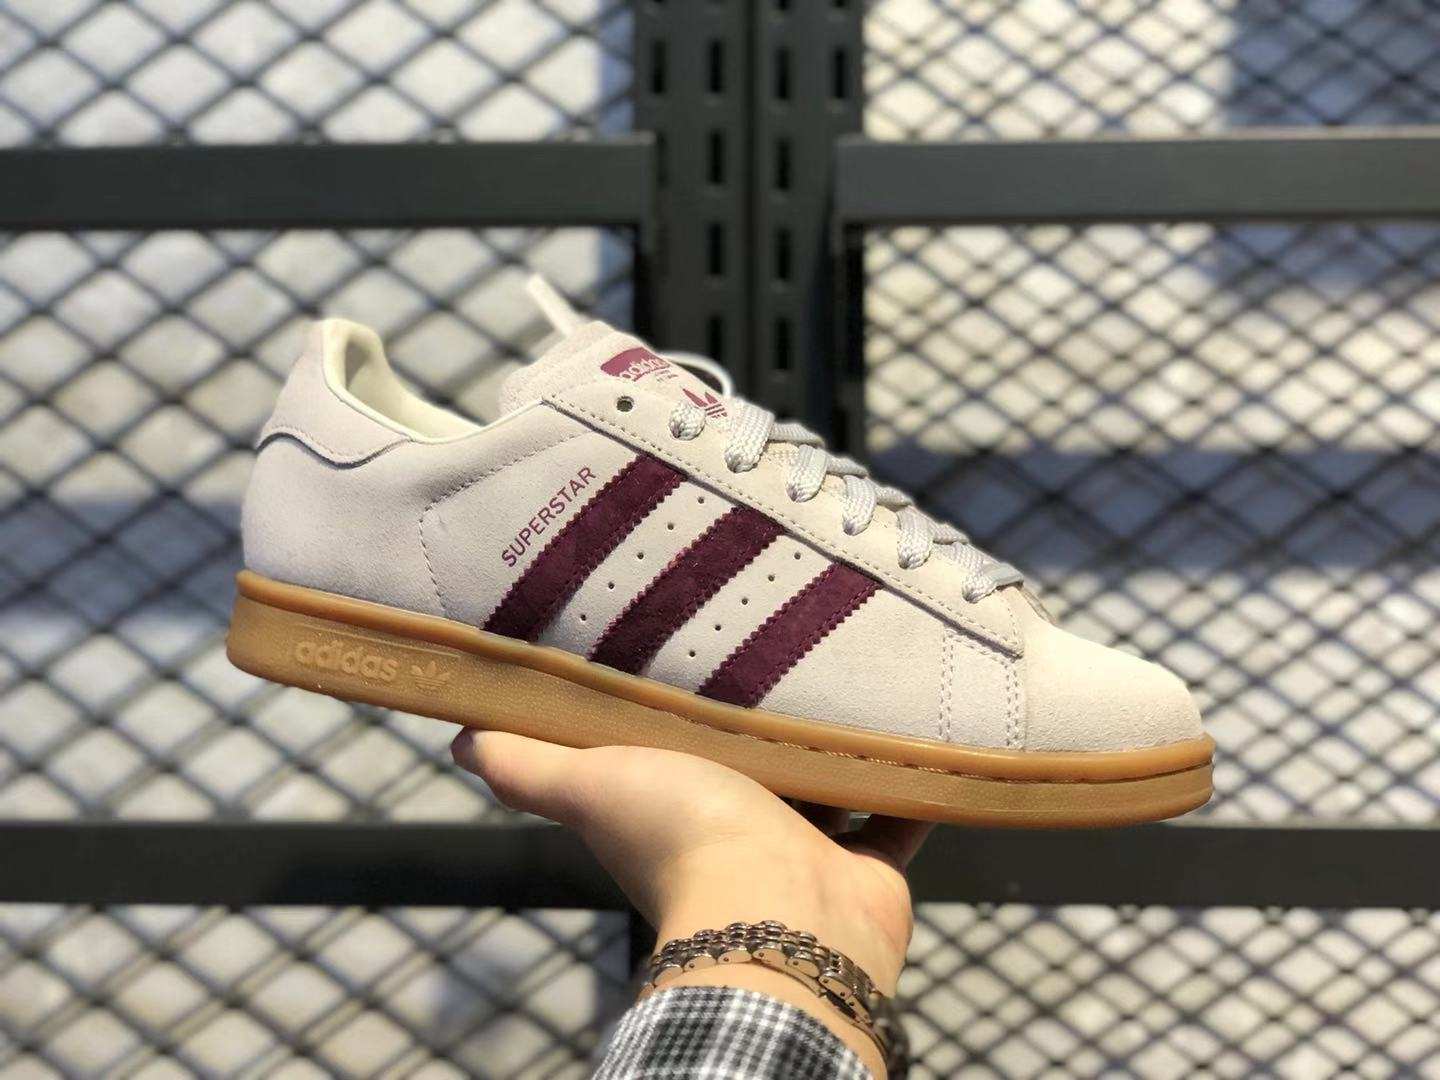 Adidas Superstar BD7437 White/Wine Red Life Classic Shoes Free Shipping